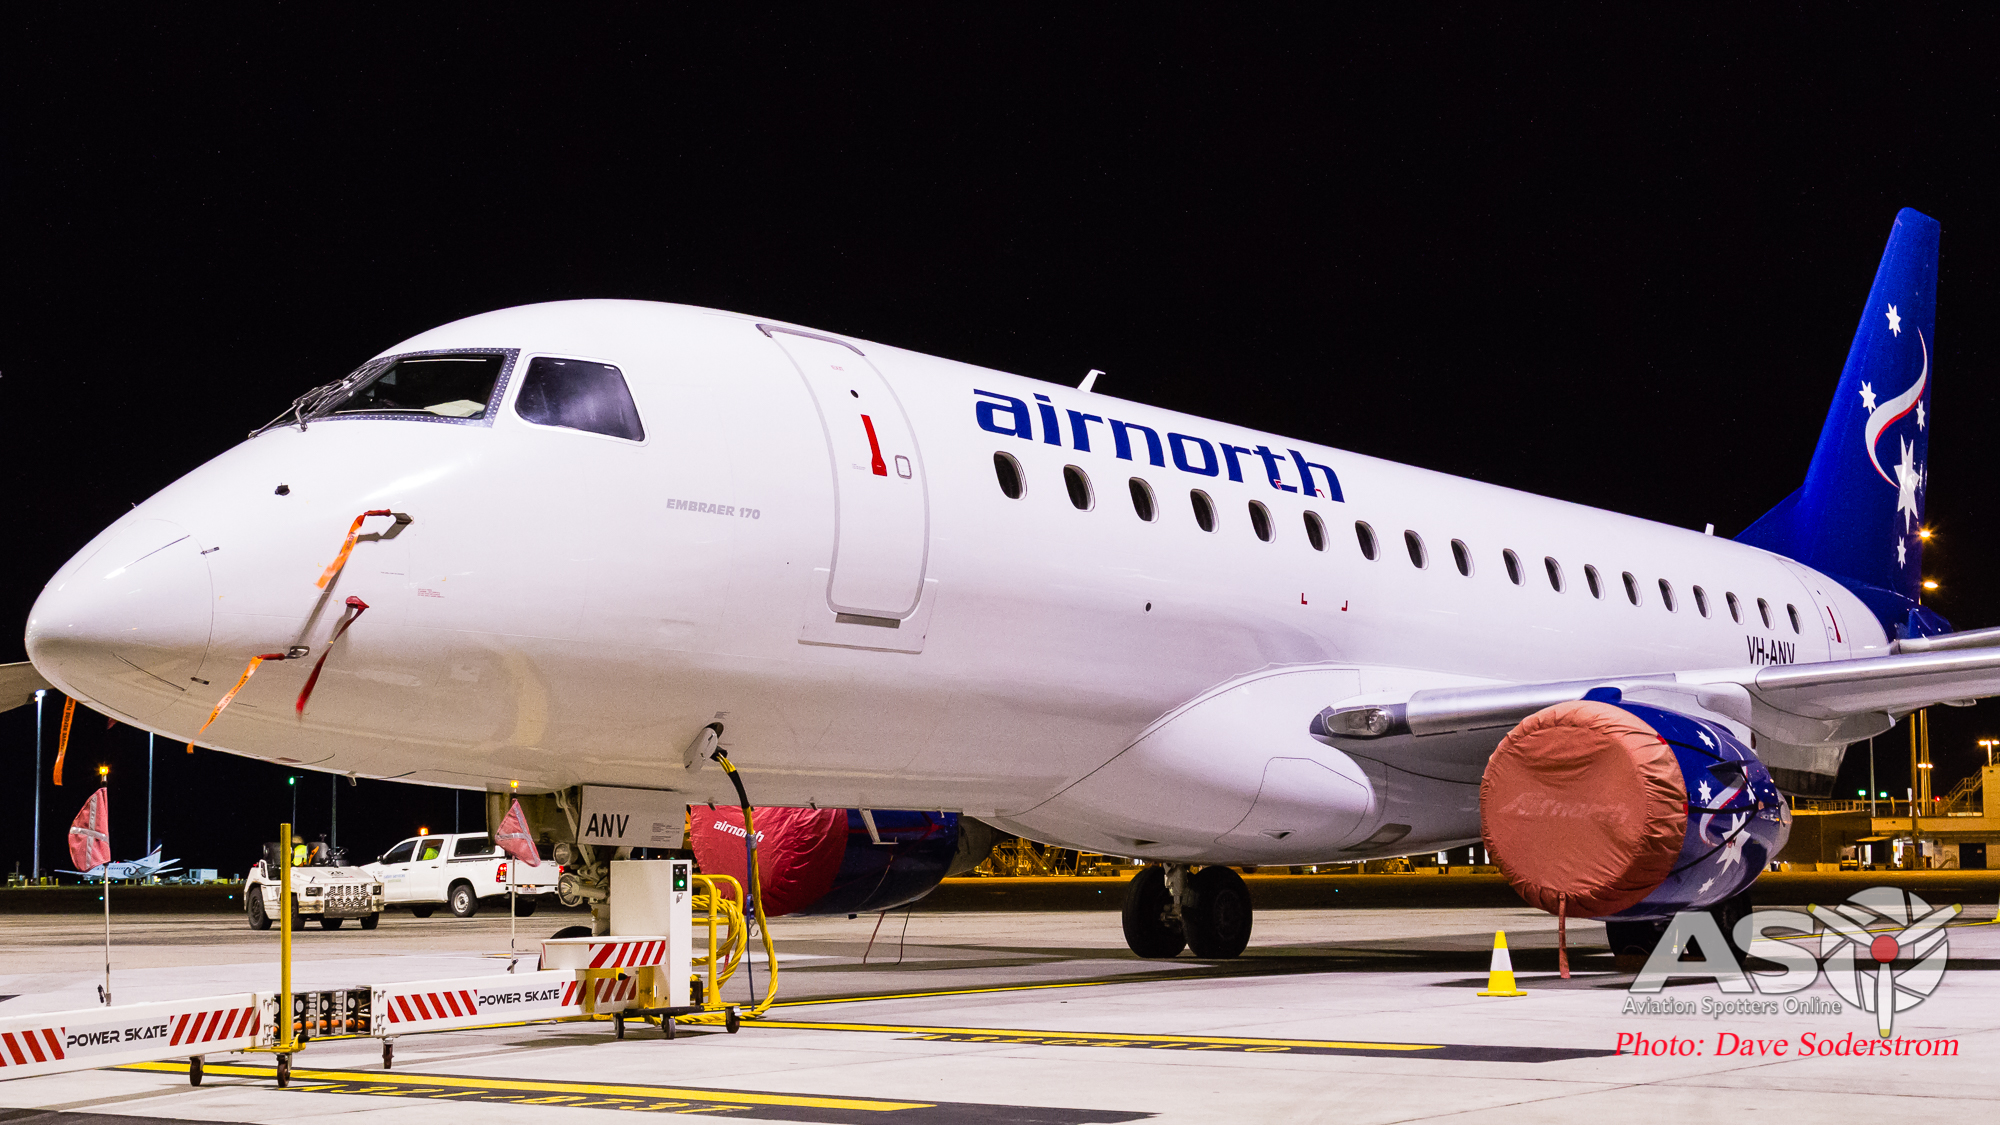 Airnorth celebrate their 40th anniversary in aviation.